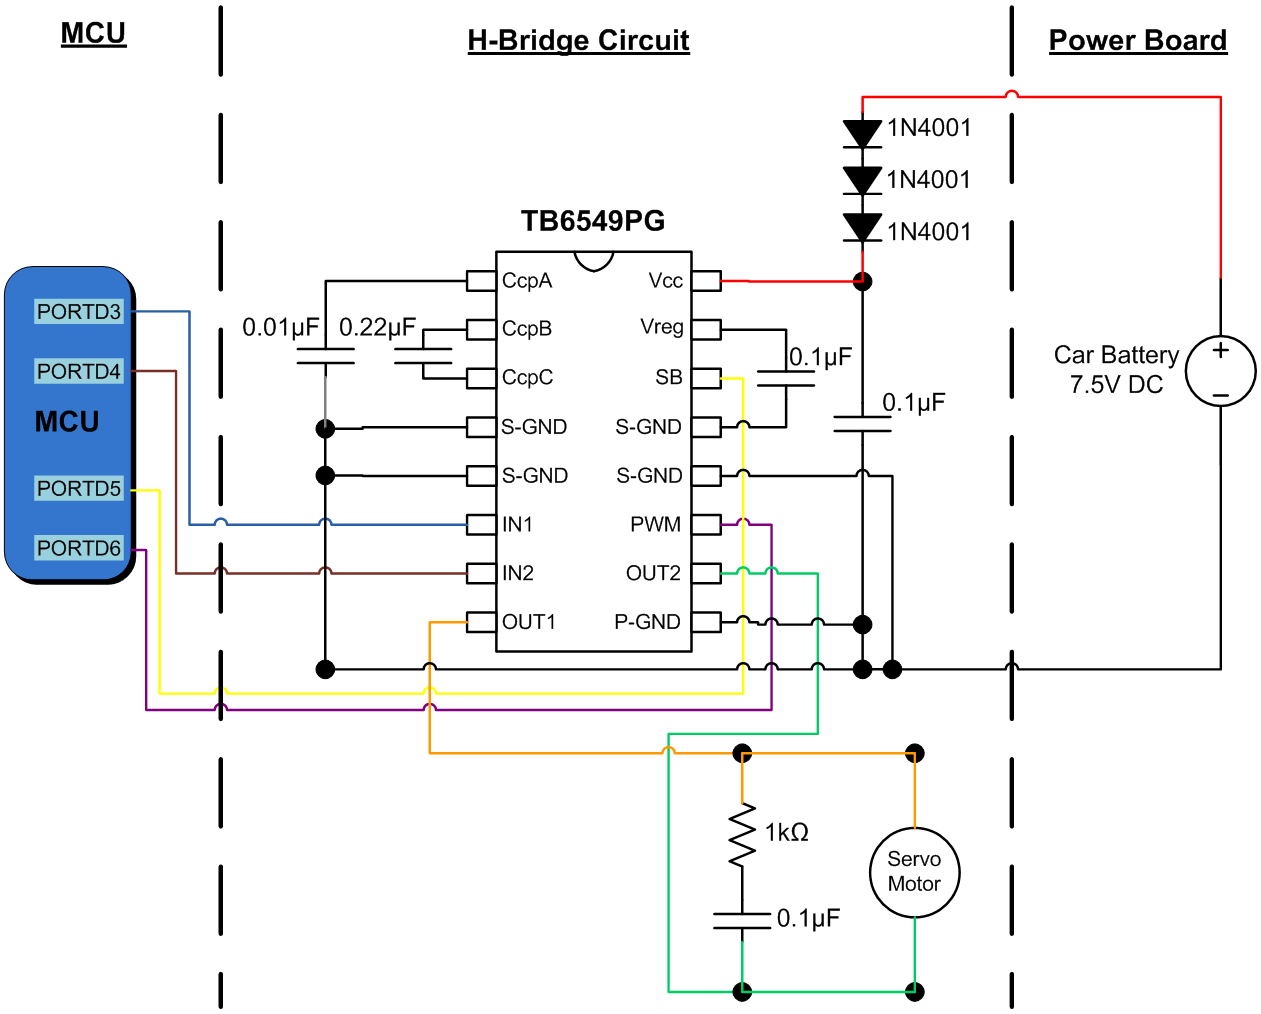 Ece 4760 The Autonomous Driving Car Parking Circuit Wiring Diagram H Bridge